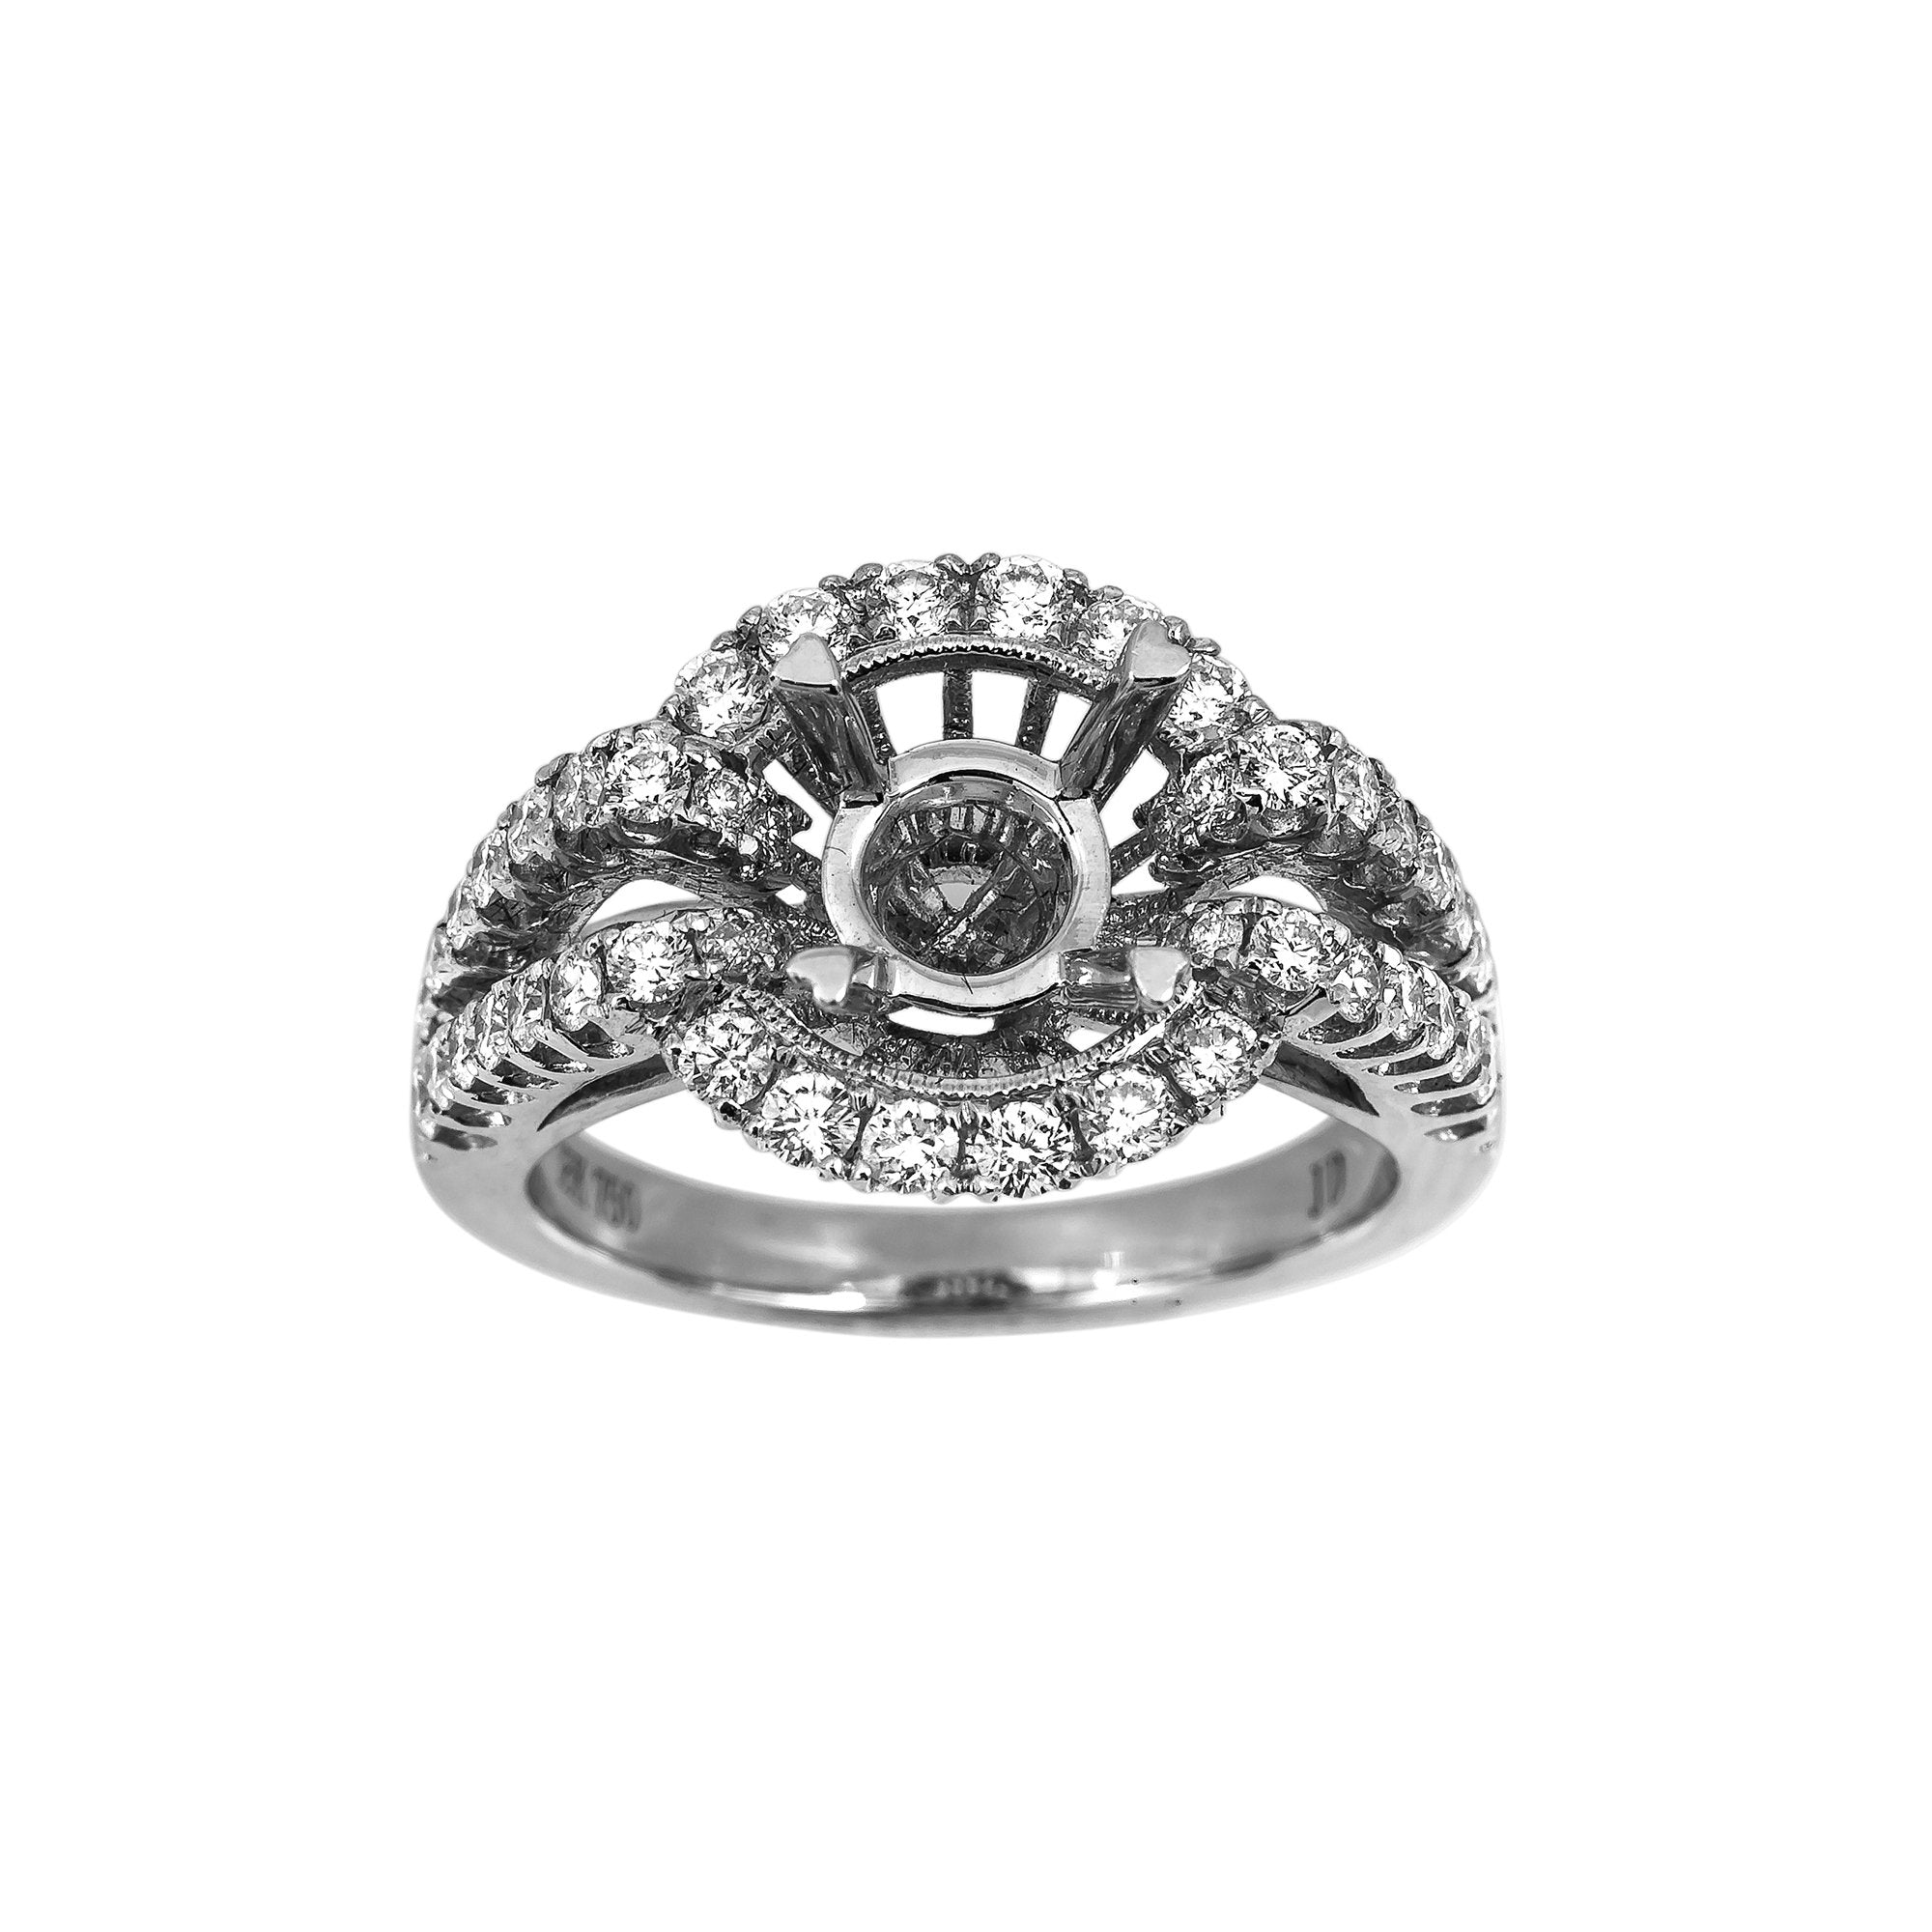 18K White Gold BJ126R2 Women's Ring With 2.00 CT Diamonds